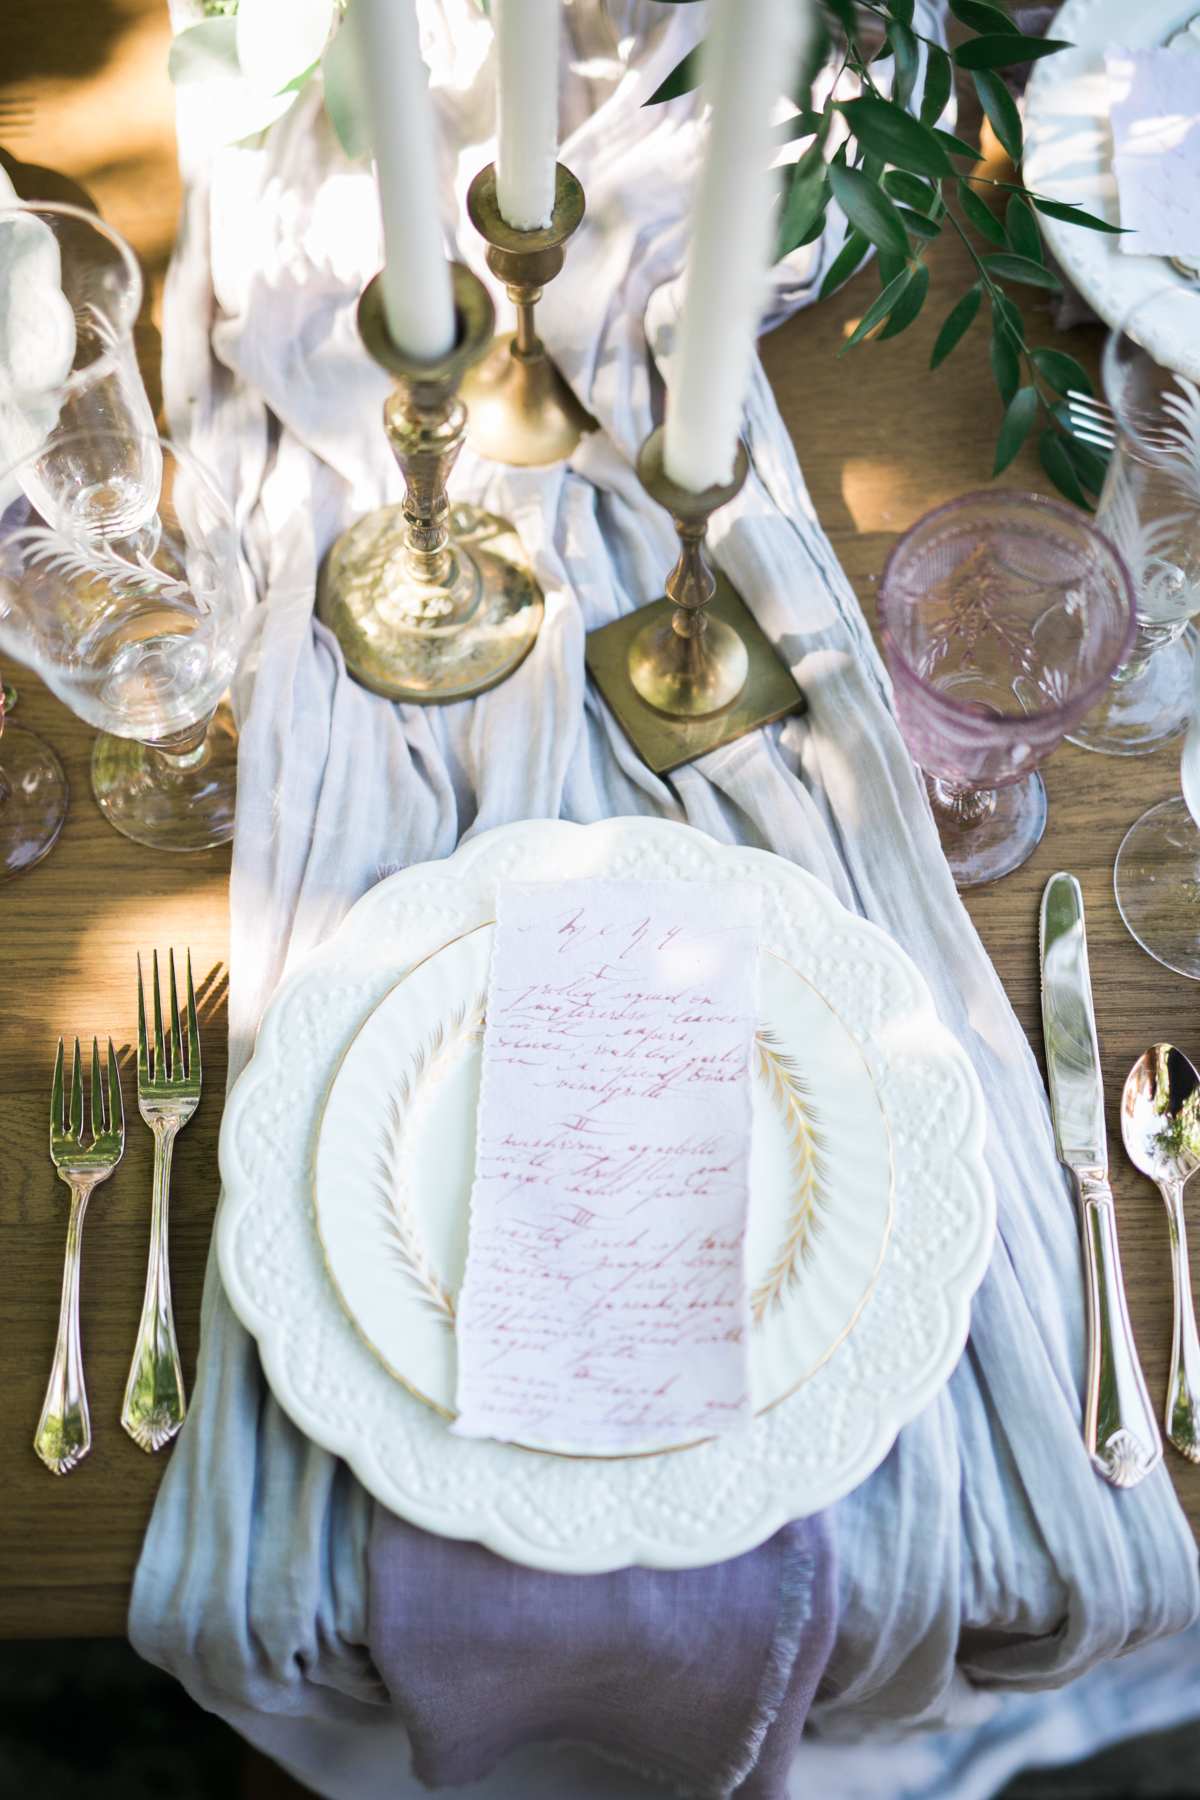 August In Bloom - Romantic reception dinner plate and menu - Fairytale Wedding (Wedluxe)